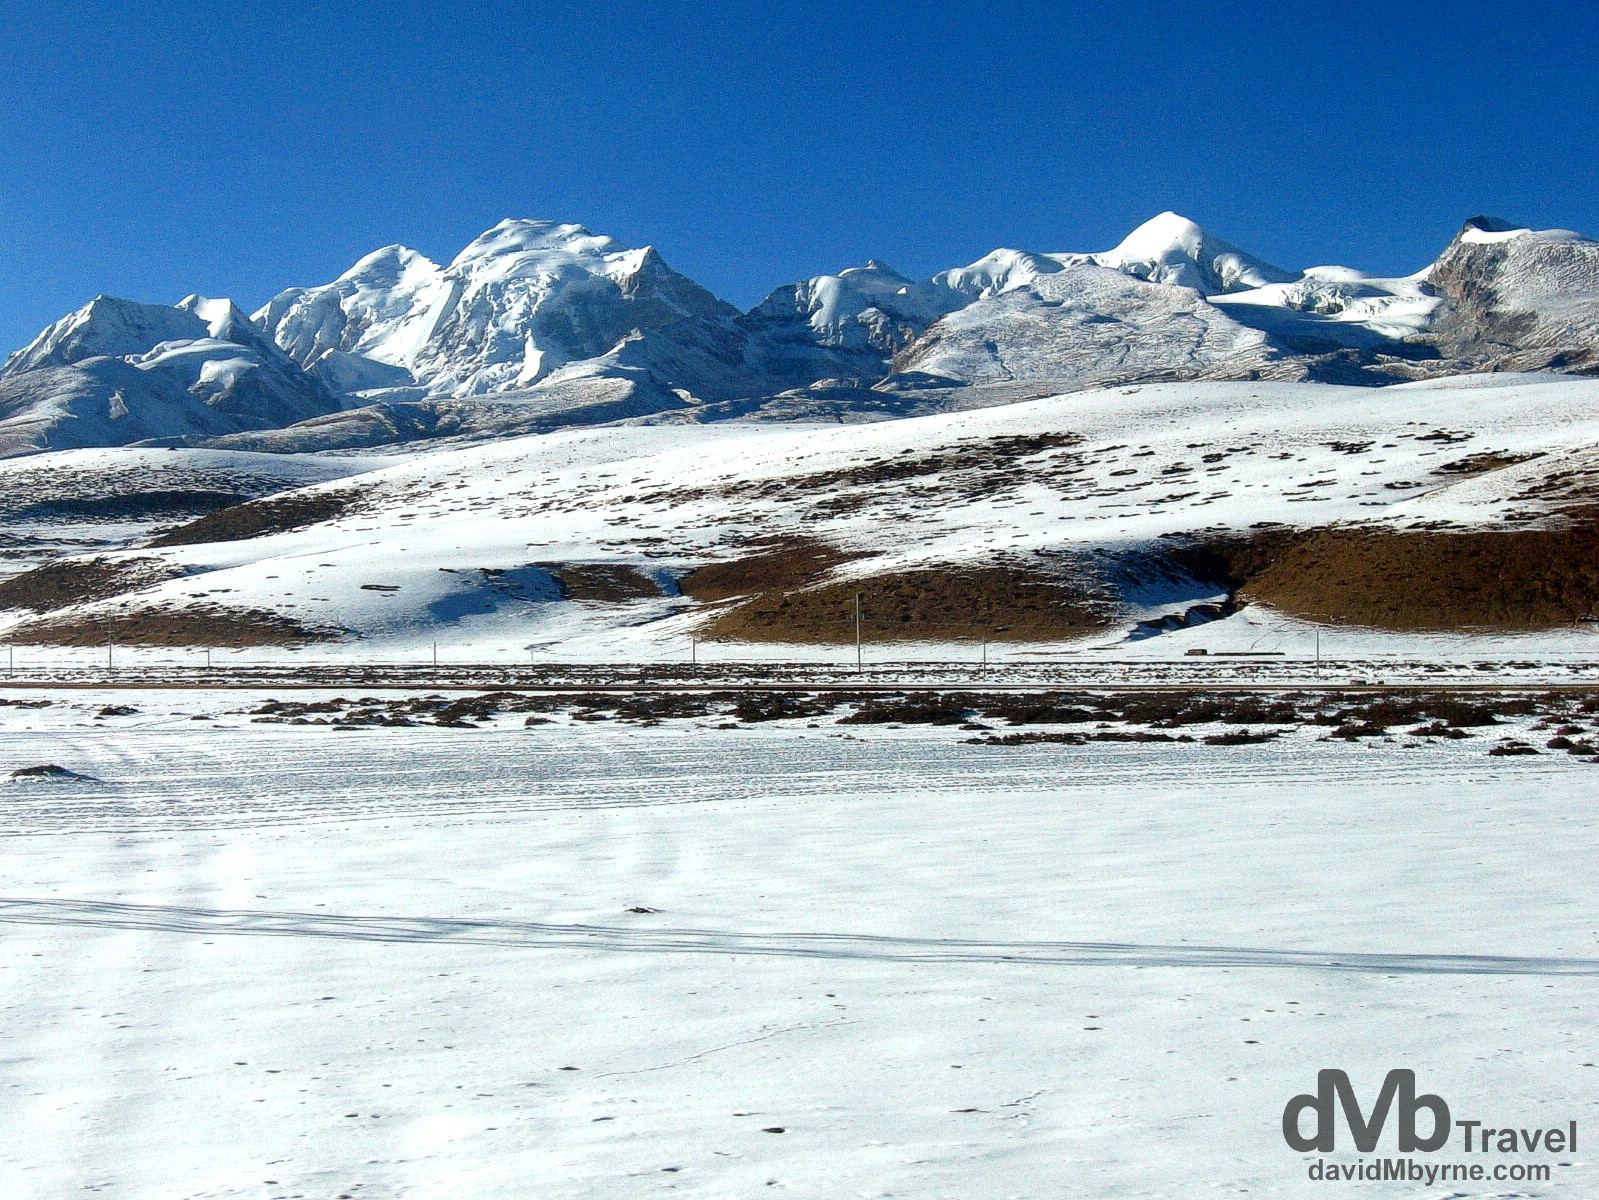 Tibetan Plateau scenery as seen from the Qinghai–Tibet Railway. February 24th, 2008.